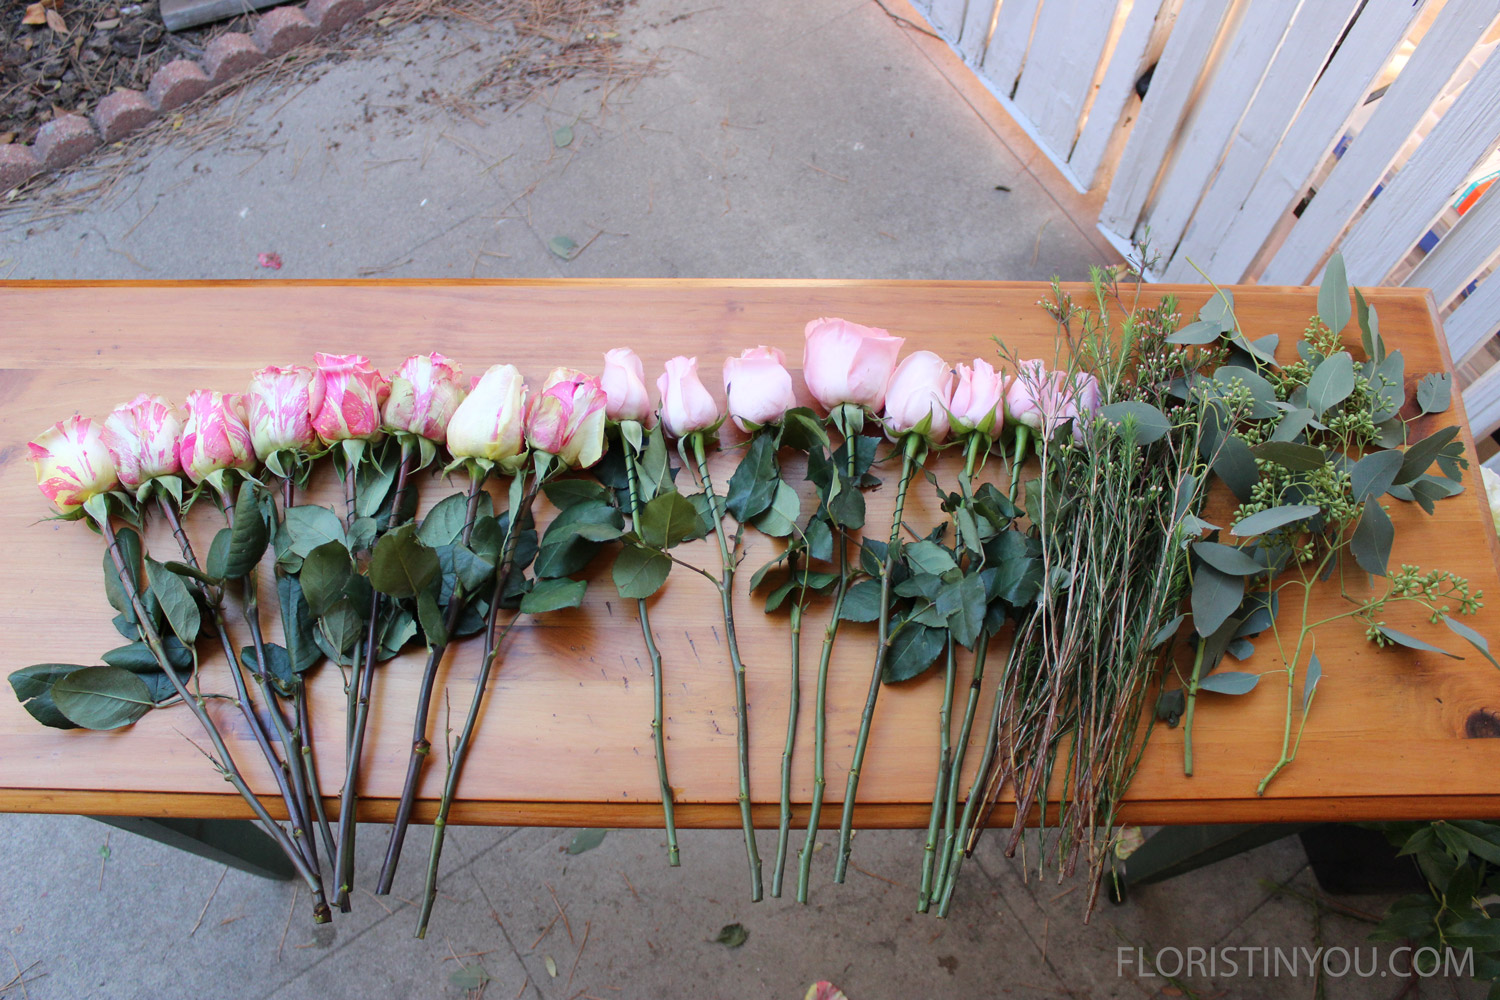 You will use 8 candy cane roses, 8 pink roses, 10 pink wax flower stems with buds, and seeded eucalyptus.